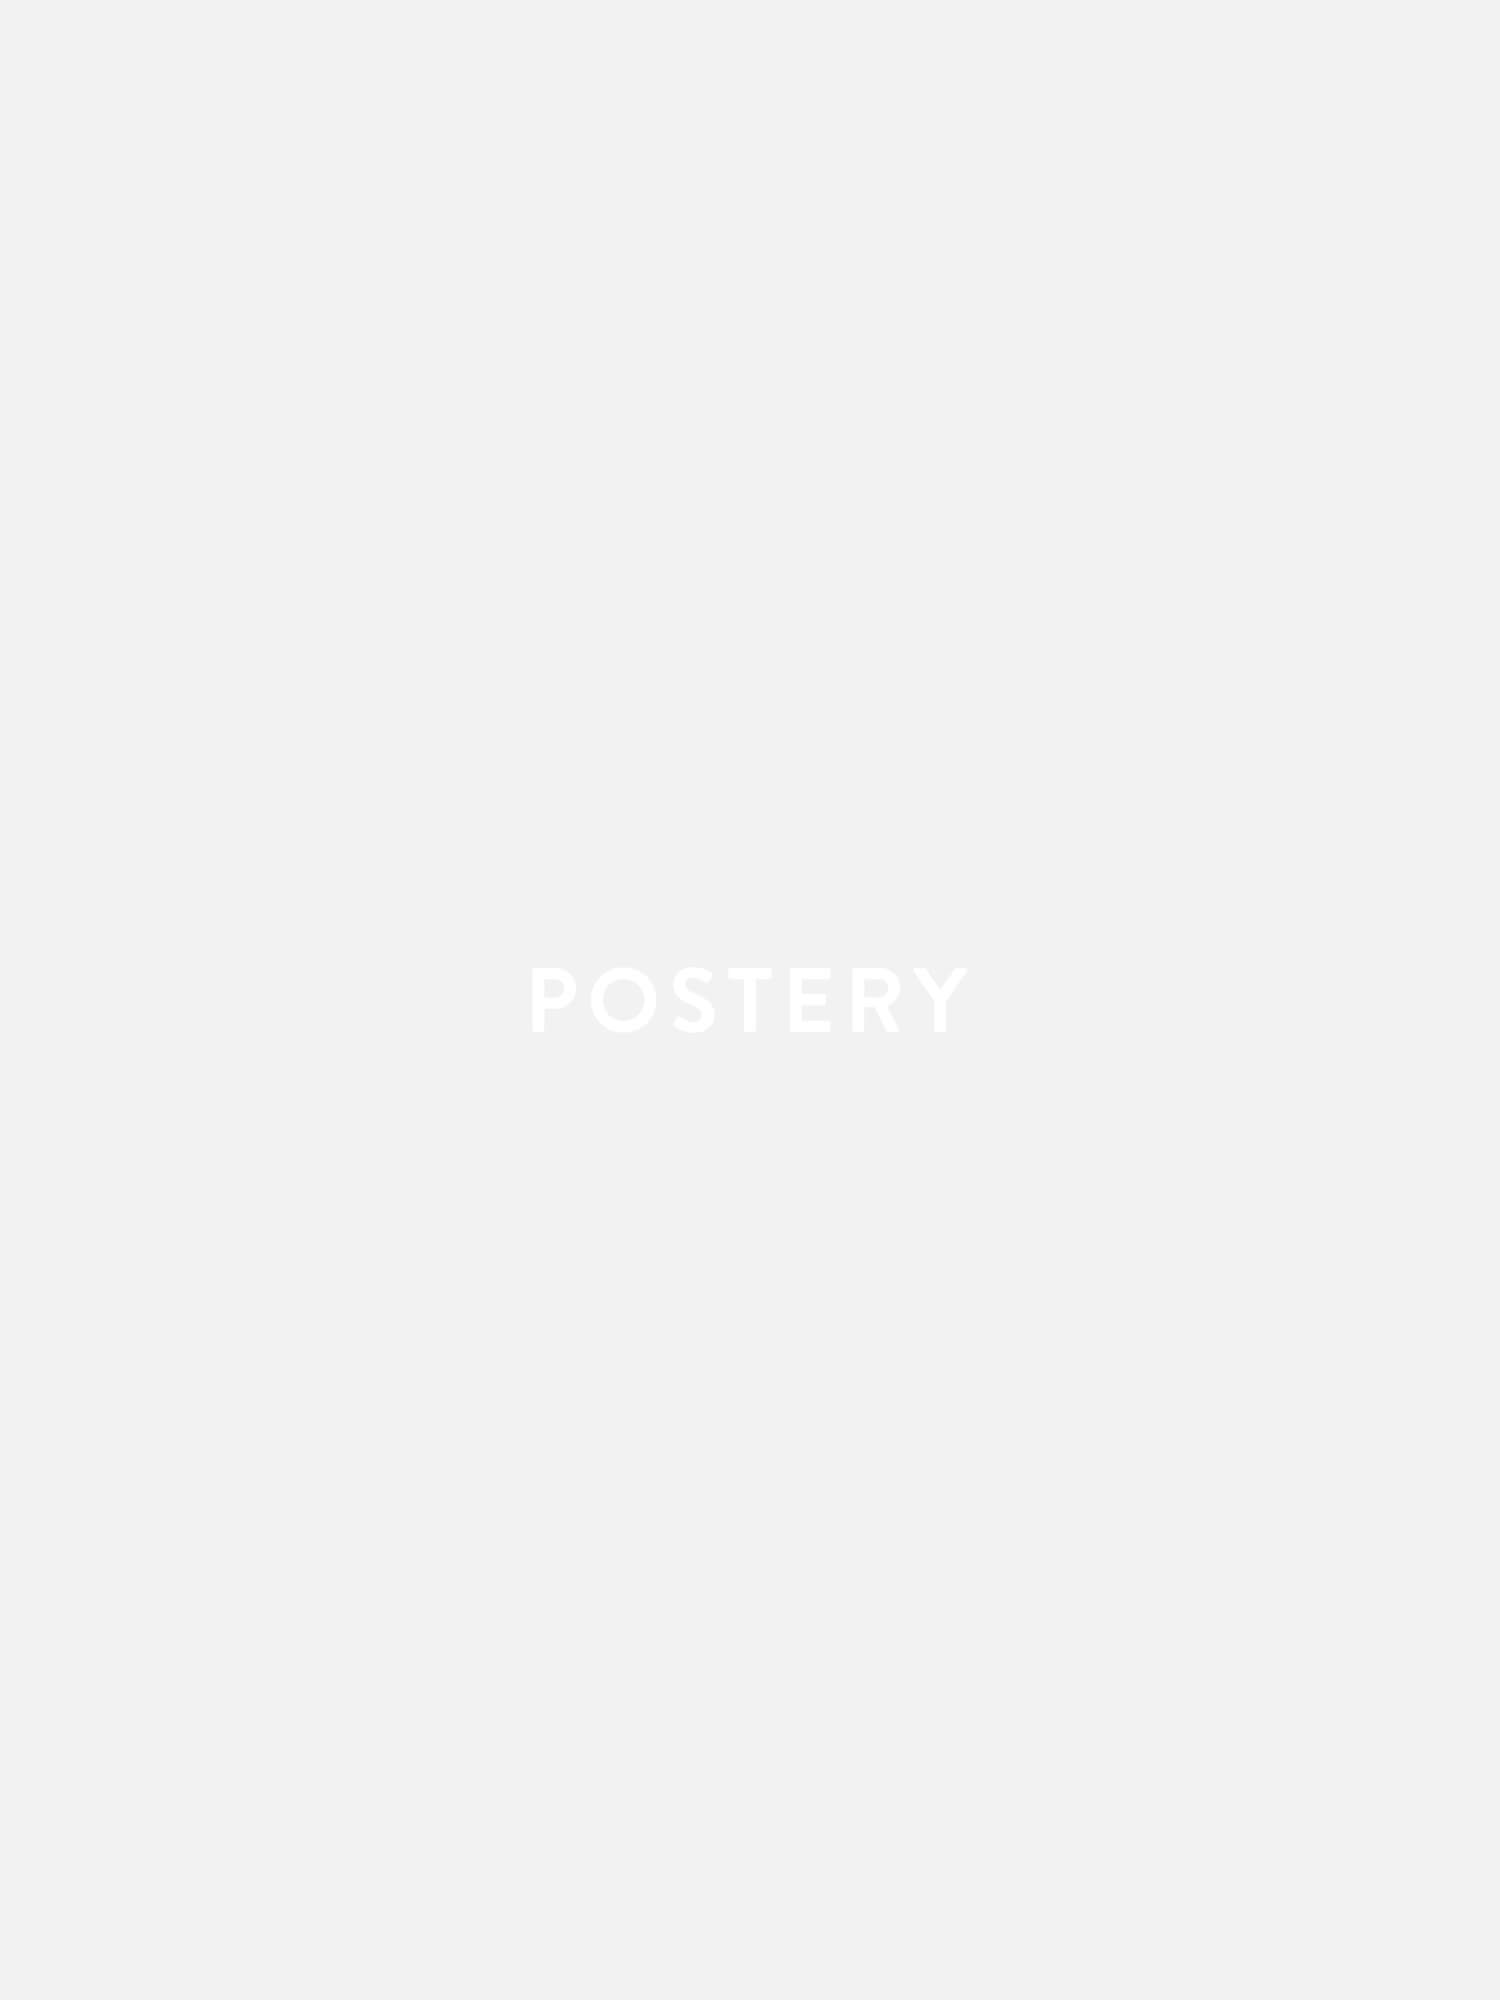 Little Elephant Poster